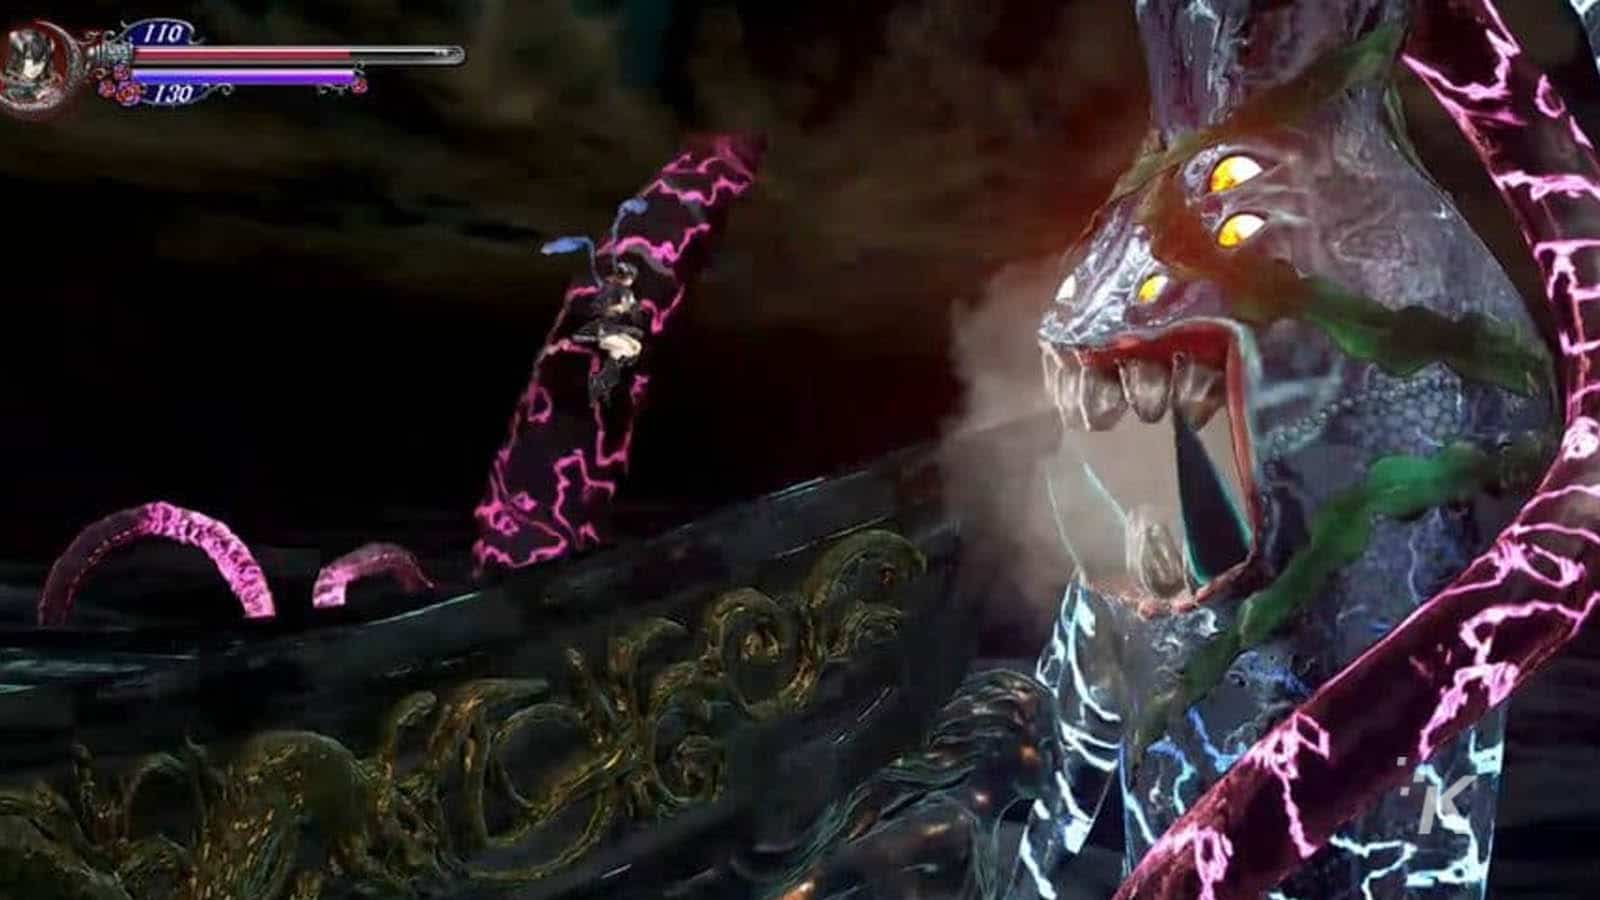 bloodstained gameplay on microsoft